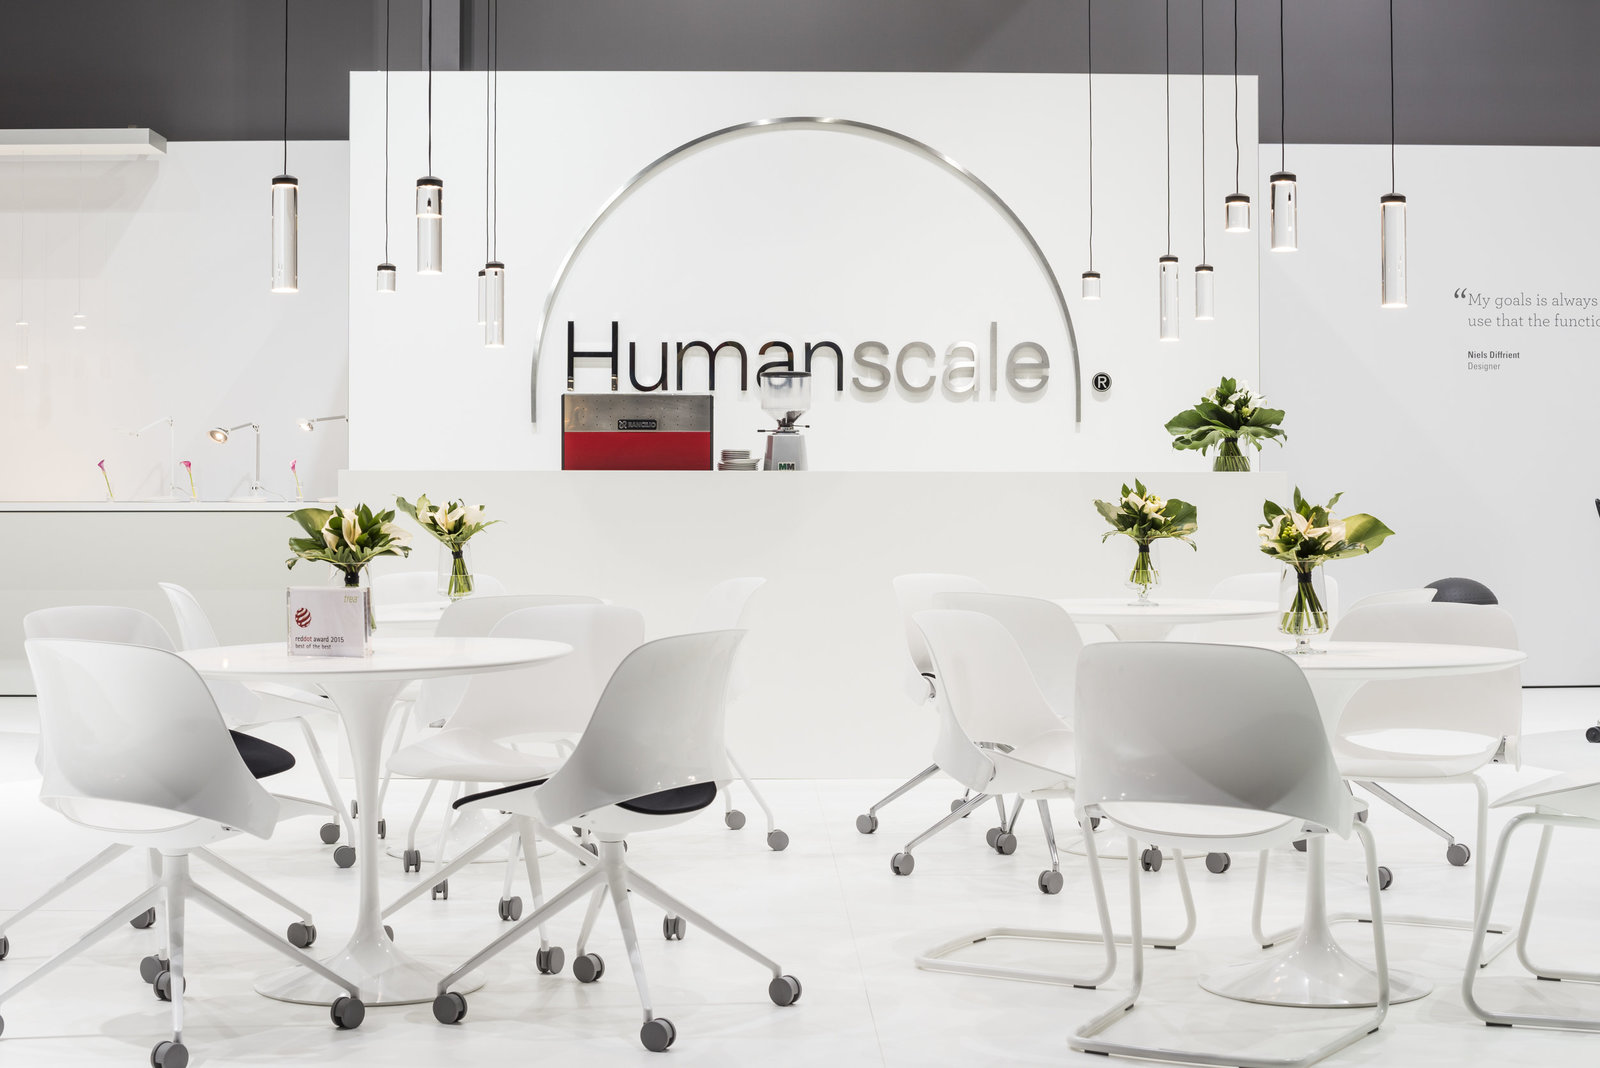 milan design week humanscale